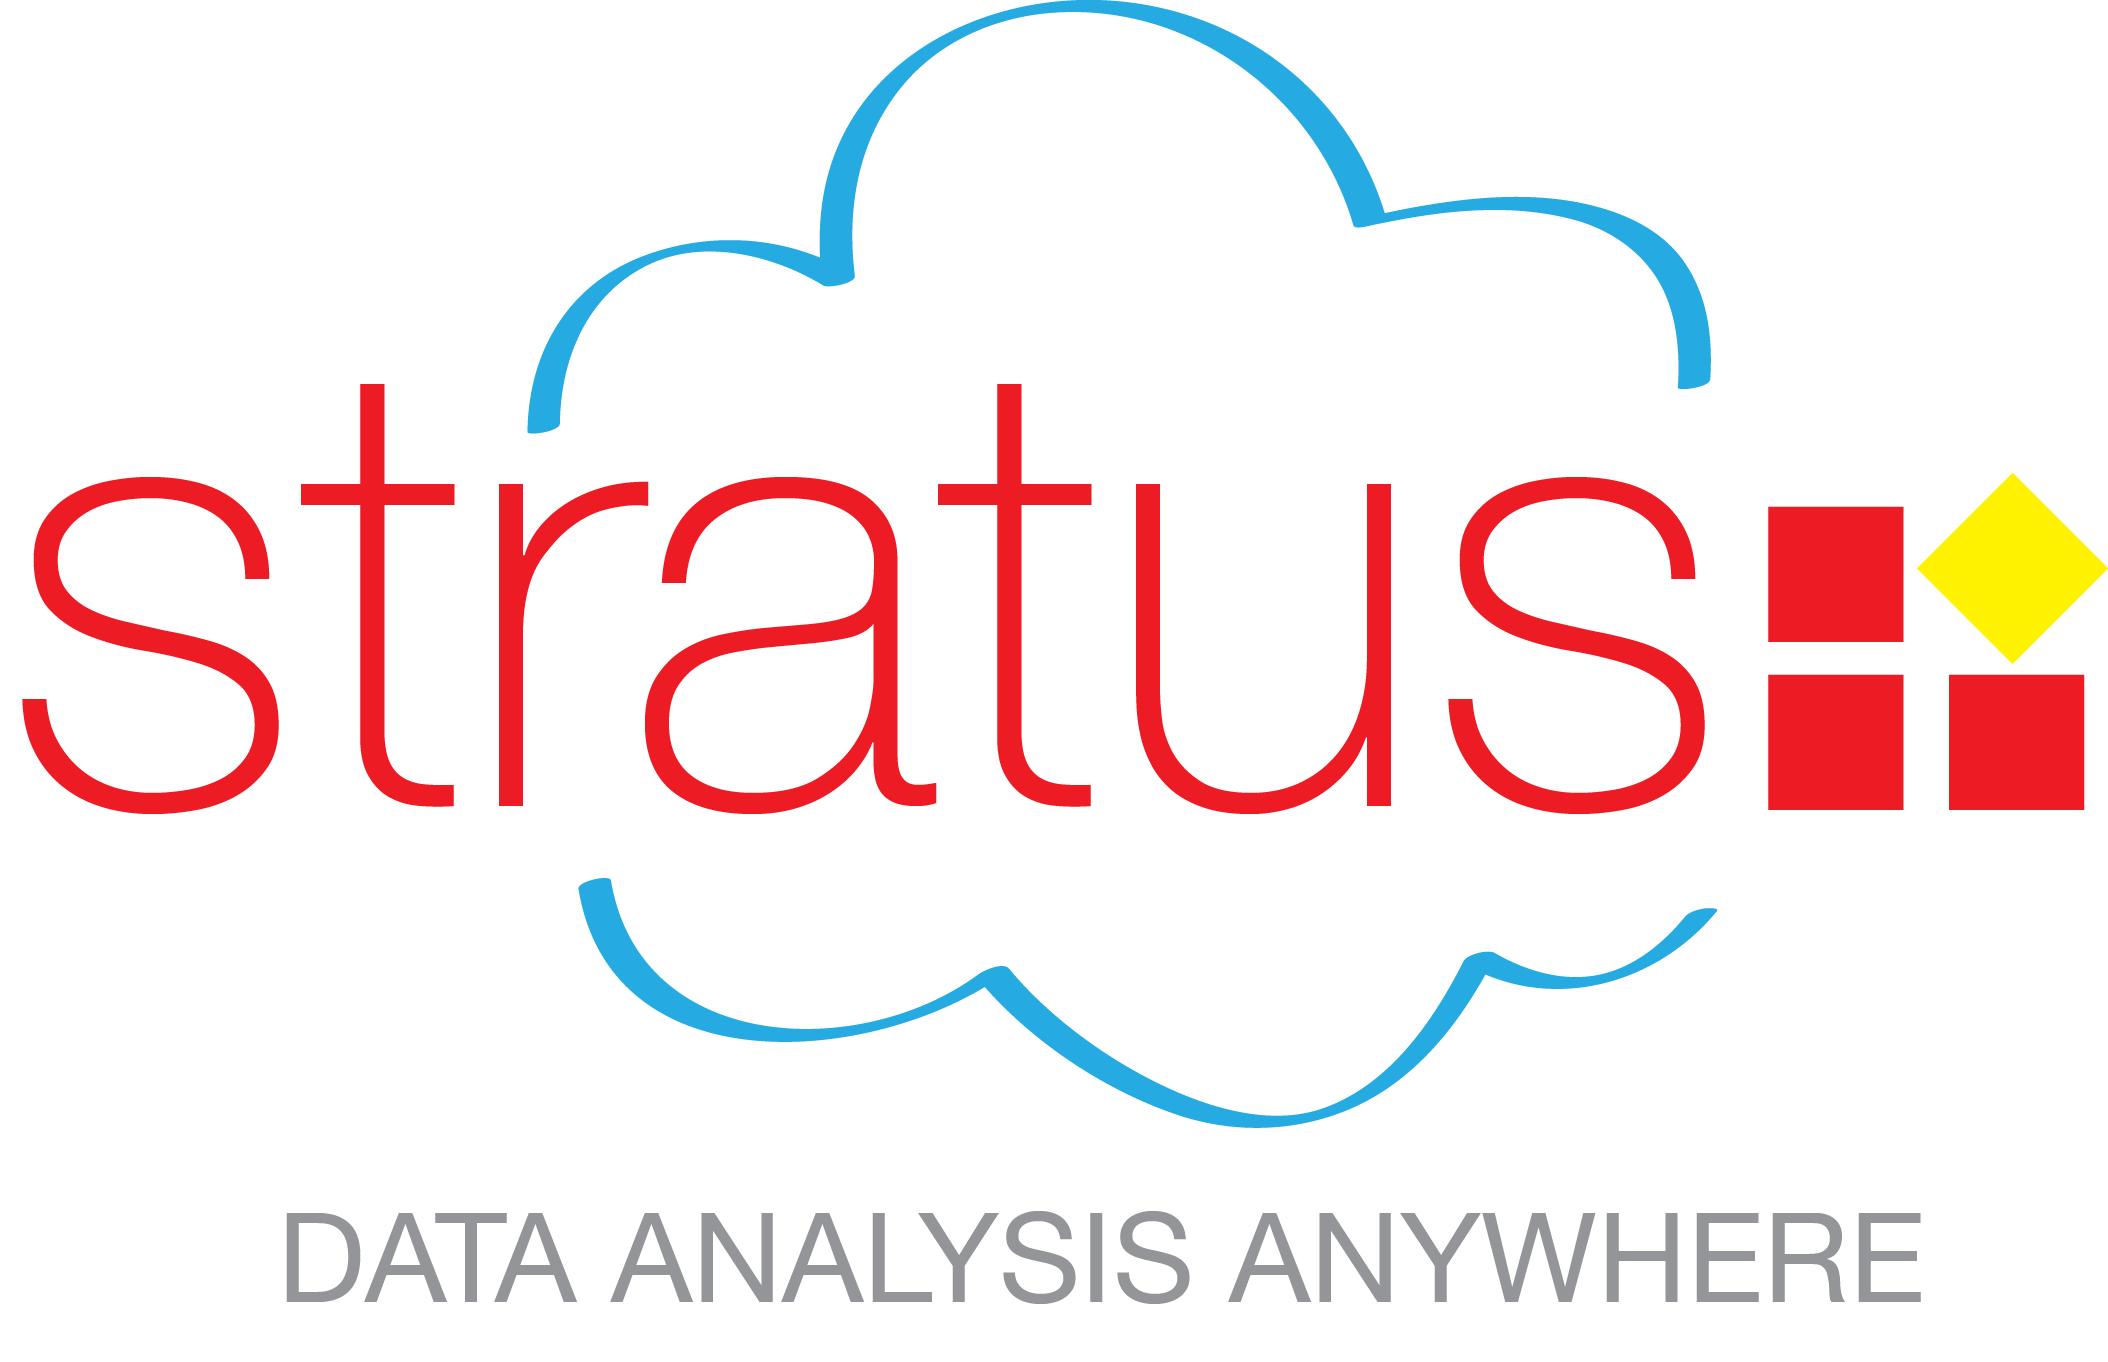 Stratus_logo_data_analysis_anywhere